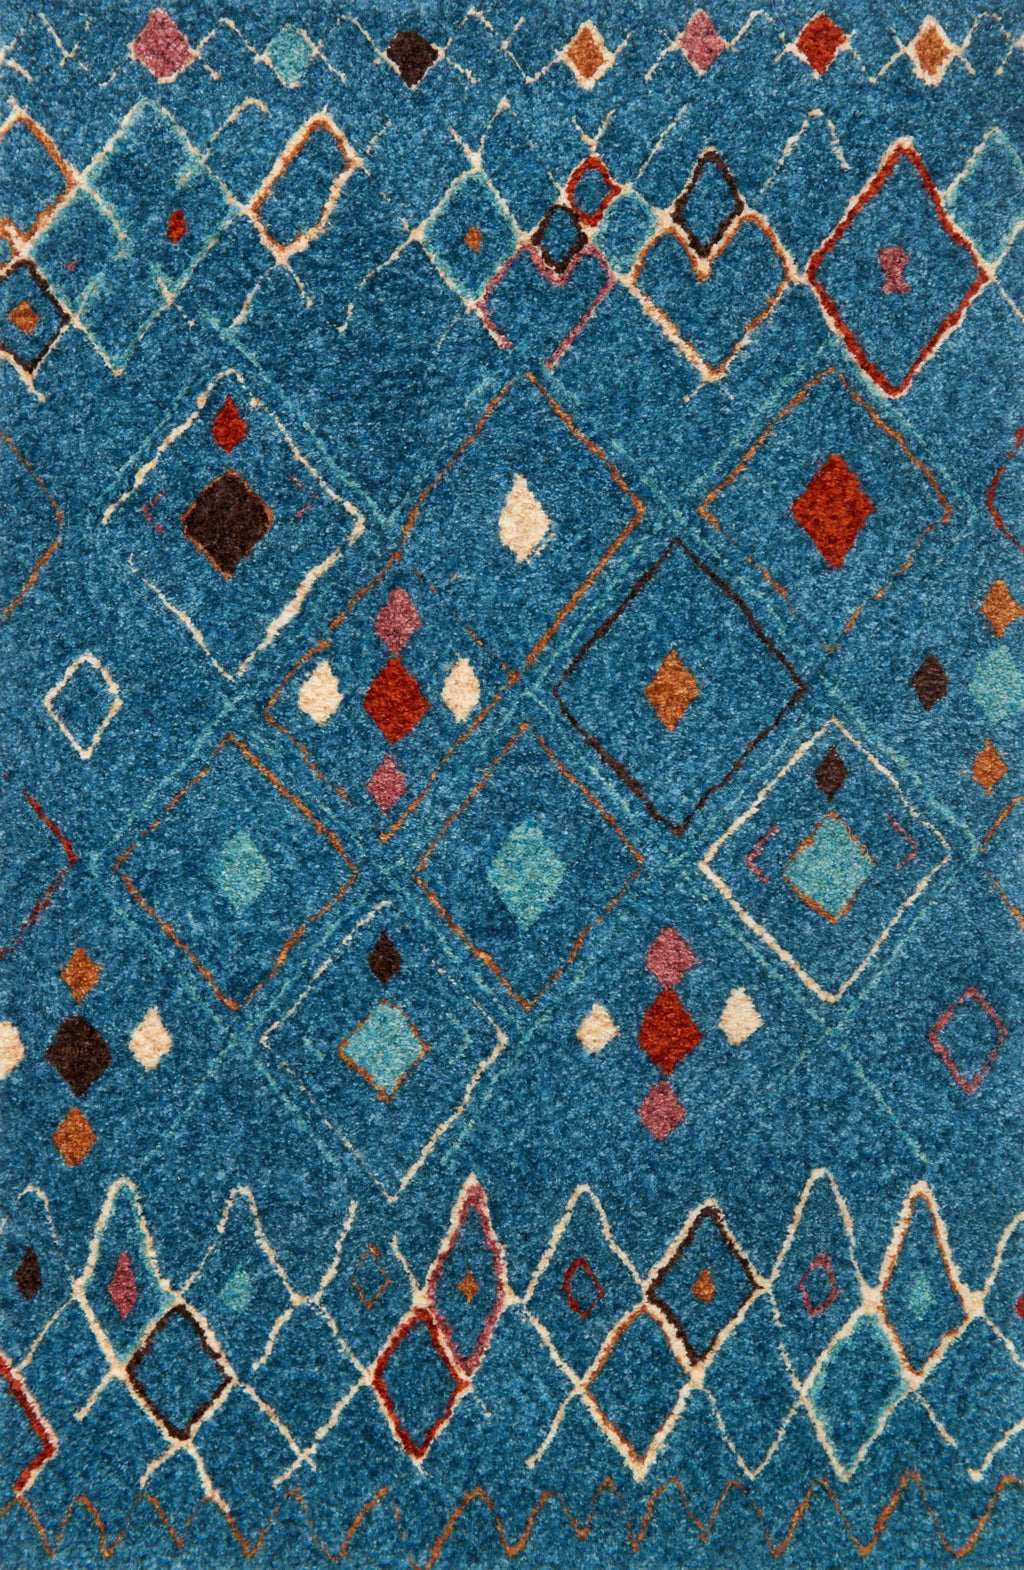 KALLIOPE Collection Rug  in  BLUE / MULTI Blue Small Hand-Woven Polyester